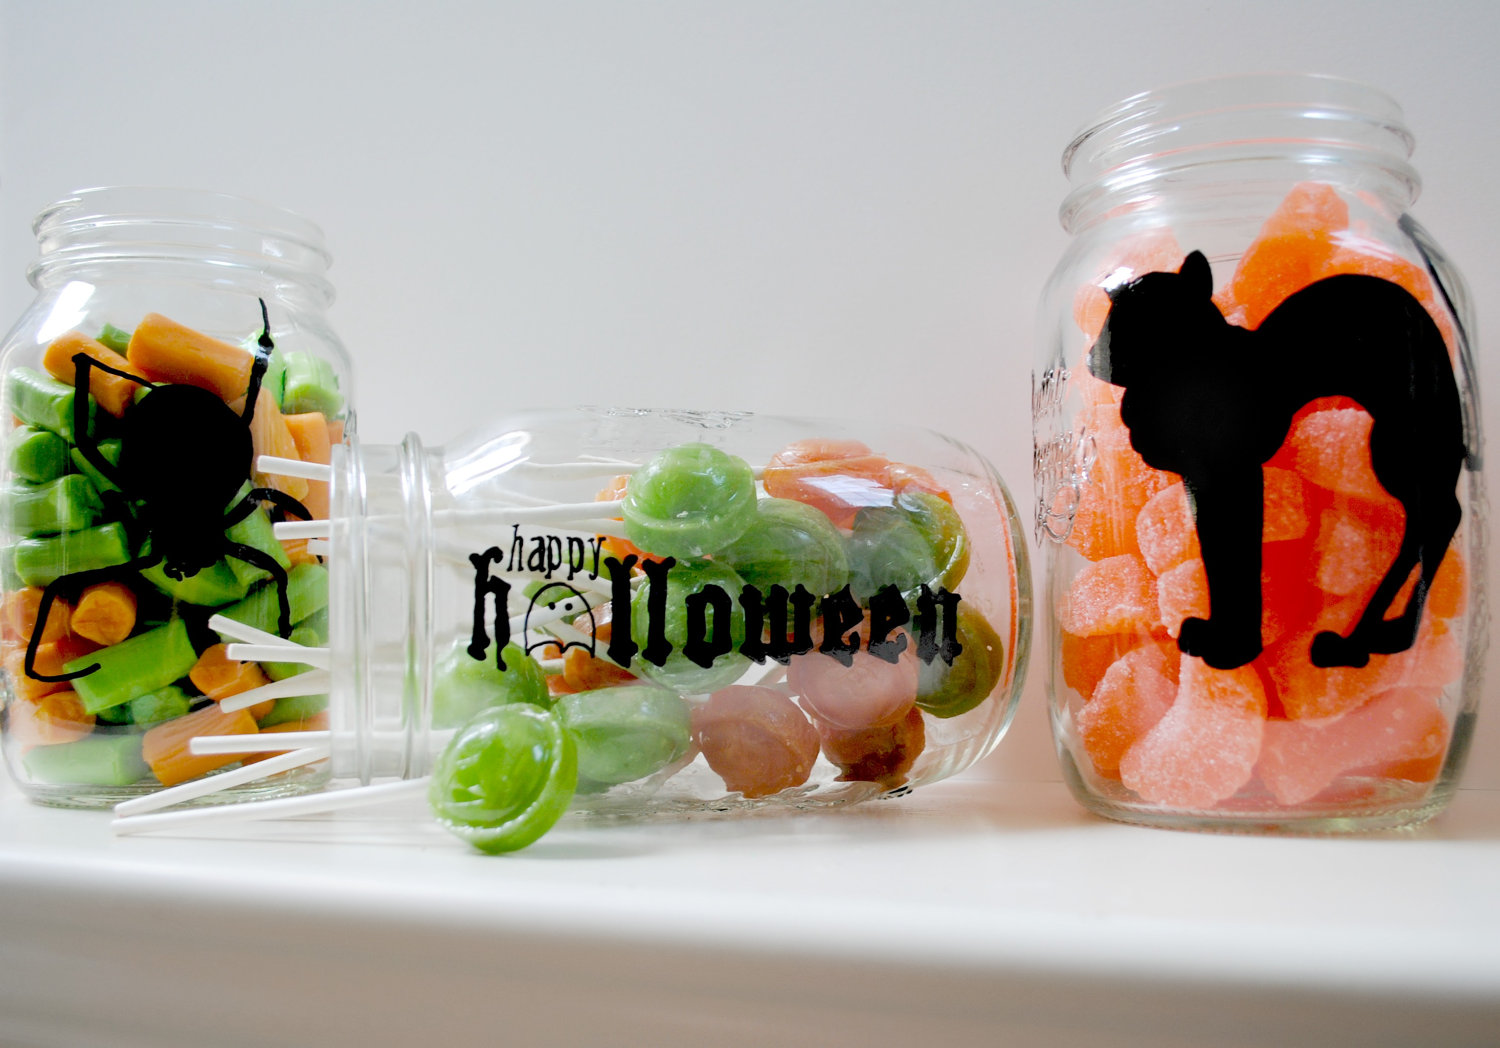 Handmade-wedding-finds-for-halloween-themed-i-dos-mason-jar-favors.original